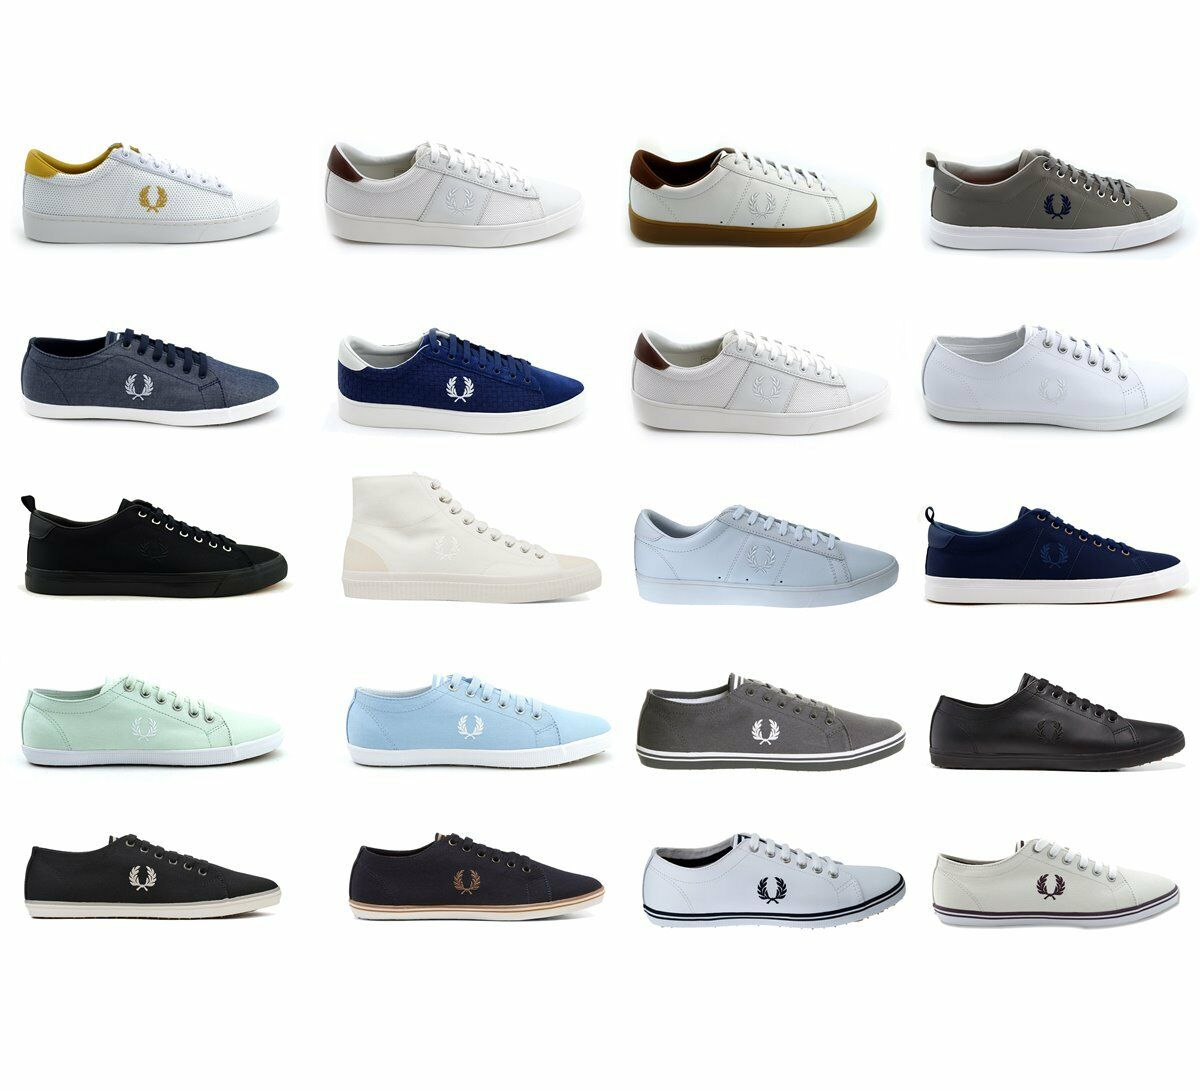 Fred Perry Schuhe Sneaker Damen Herren Kingston Spencer div. Modelle & Farben